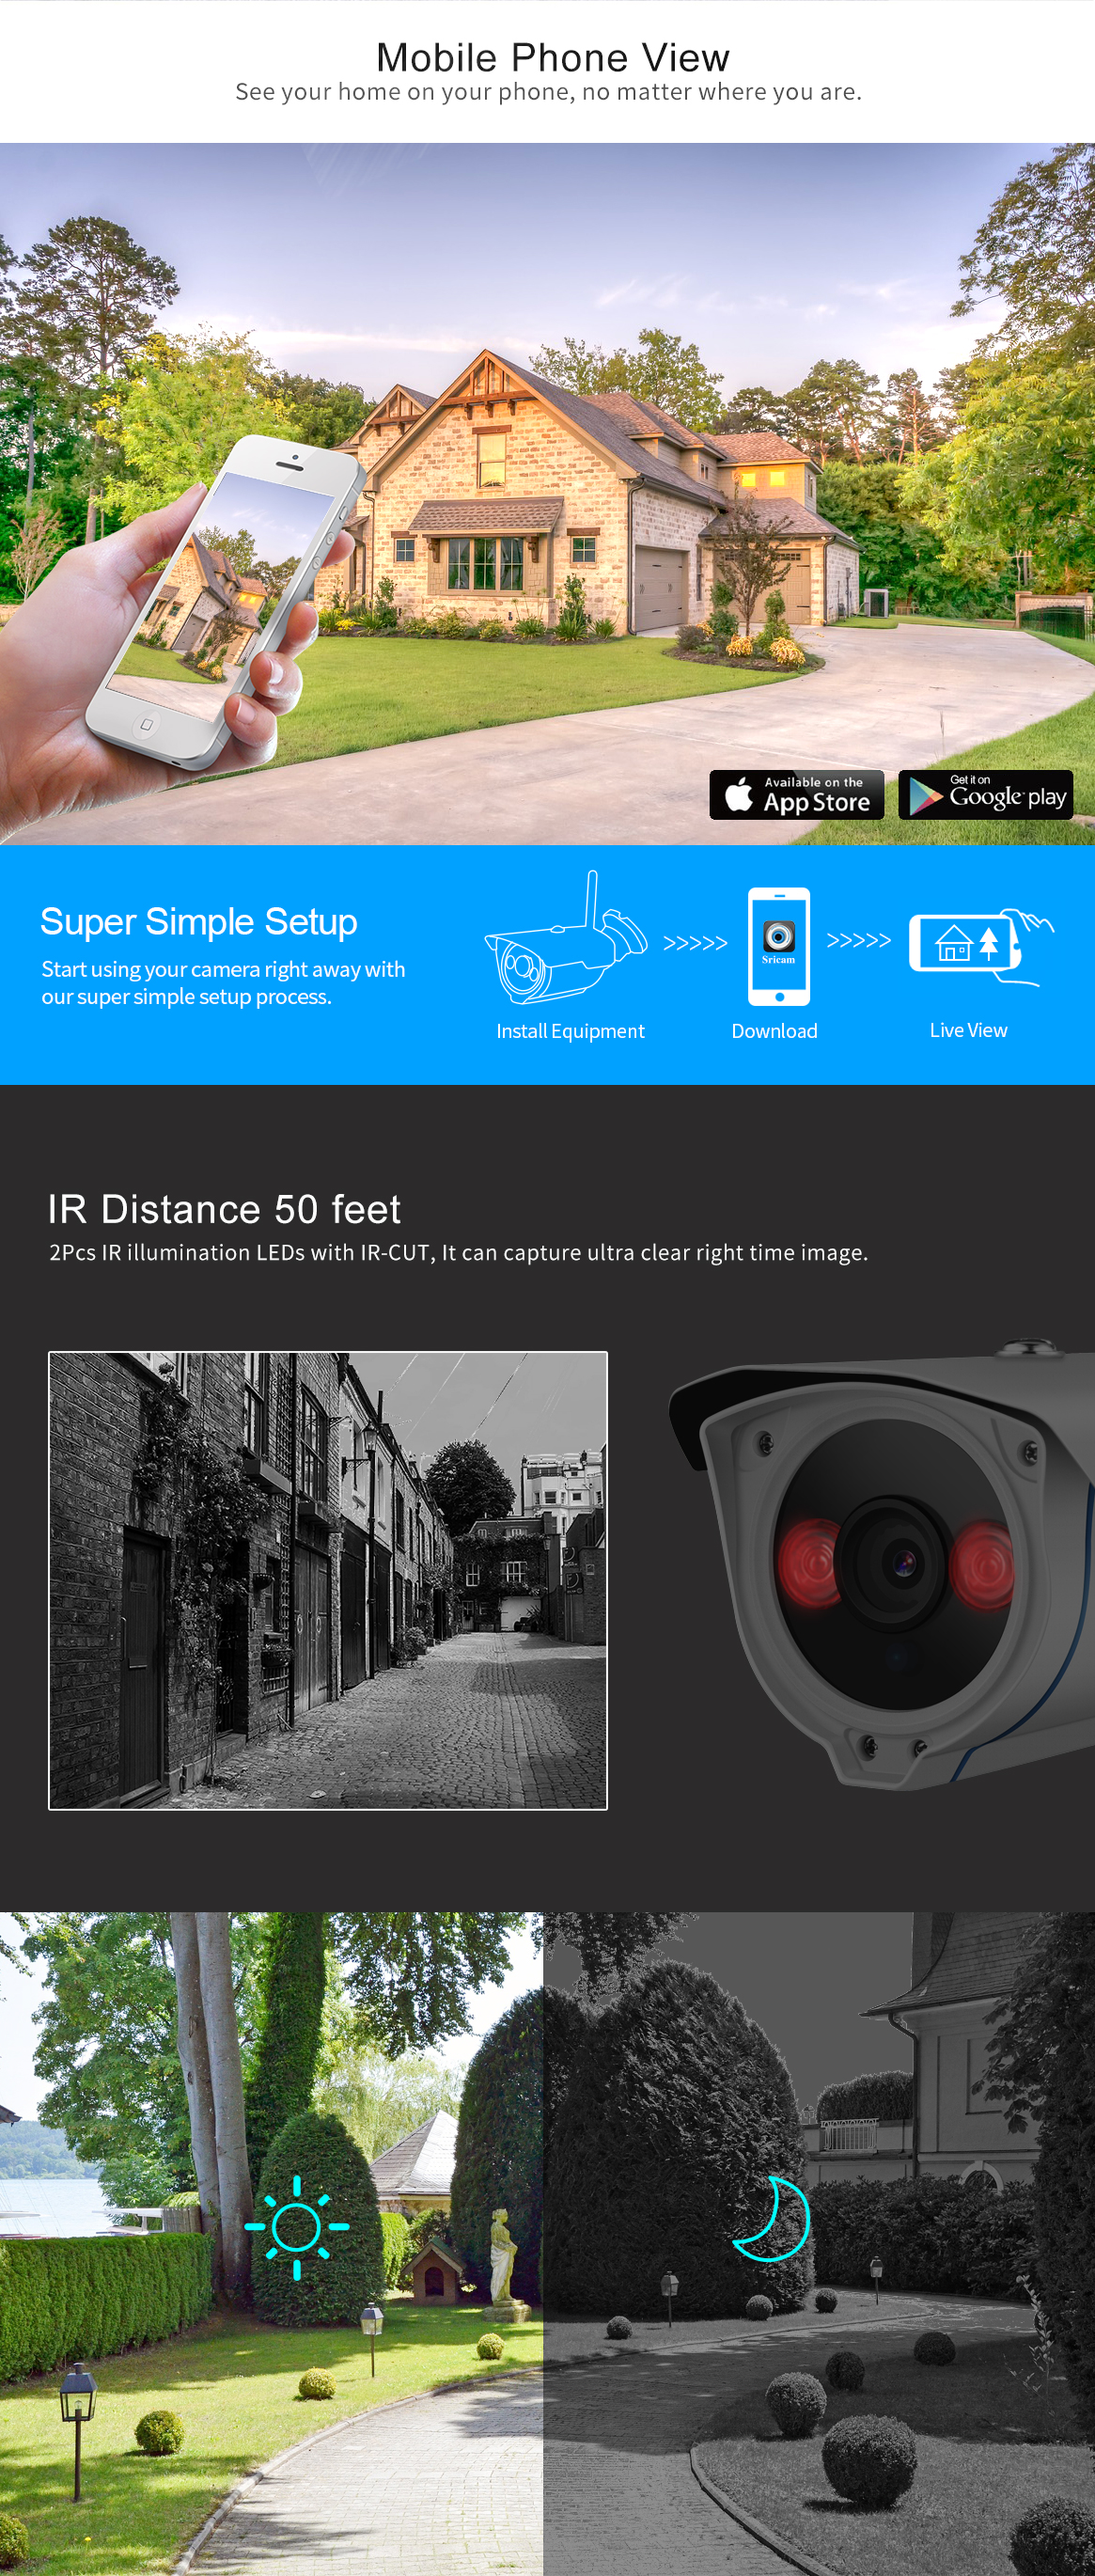 Sricam SP007 H. 265 ip camera outdoor Security Pan Tilt 2.0 Megapixel wifi security outdoor camera with sim card